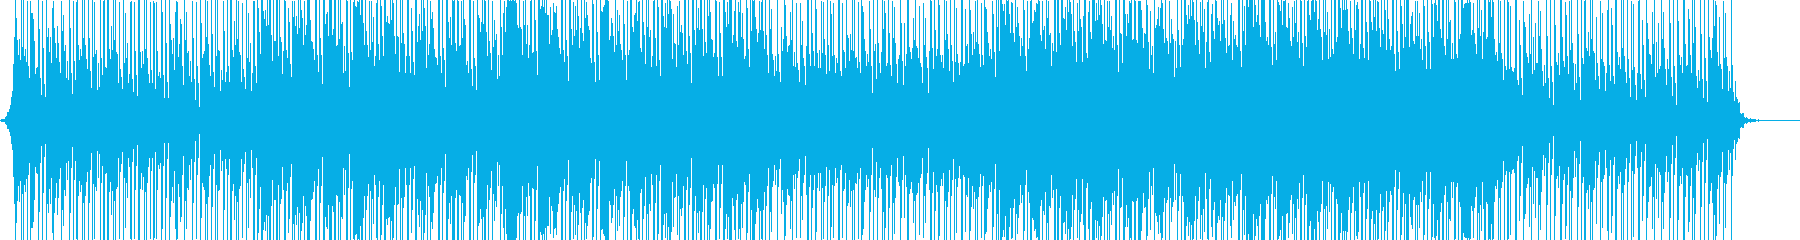 Corporate VP, refreshing, positive, stylish's reproduced waveform